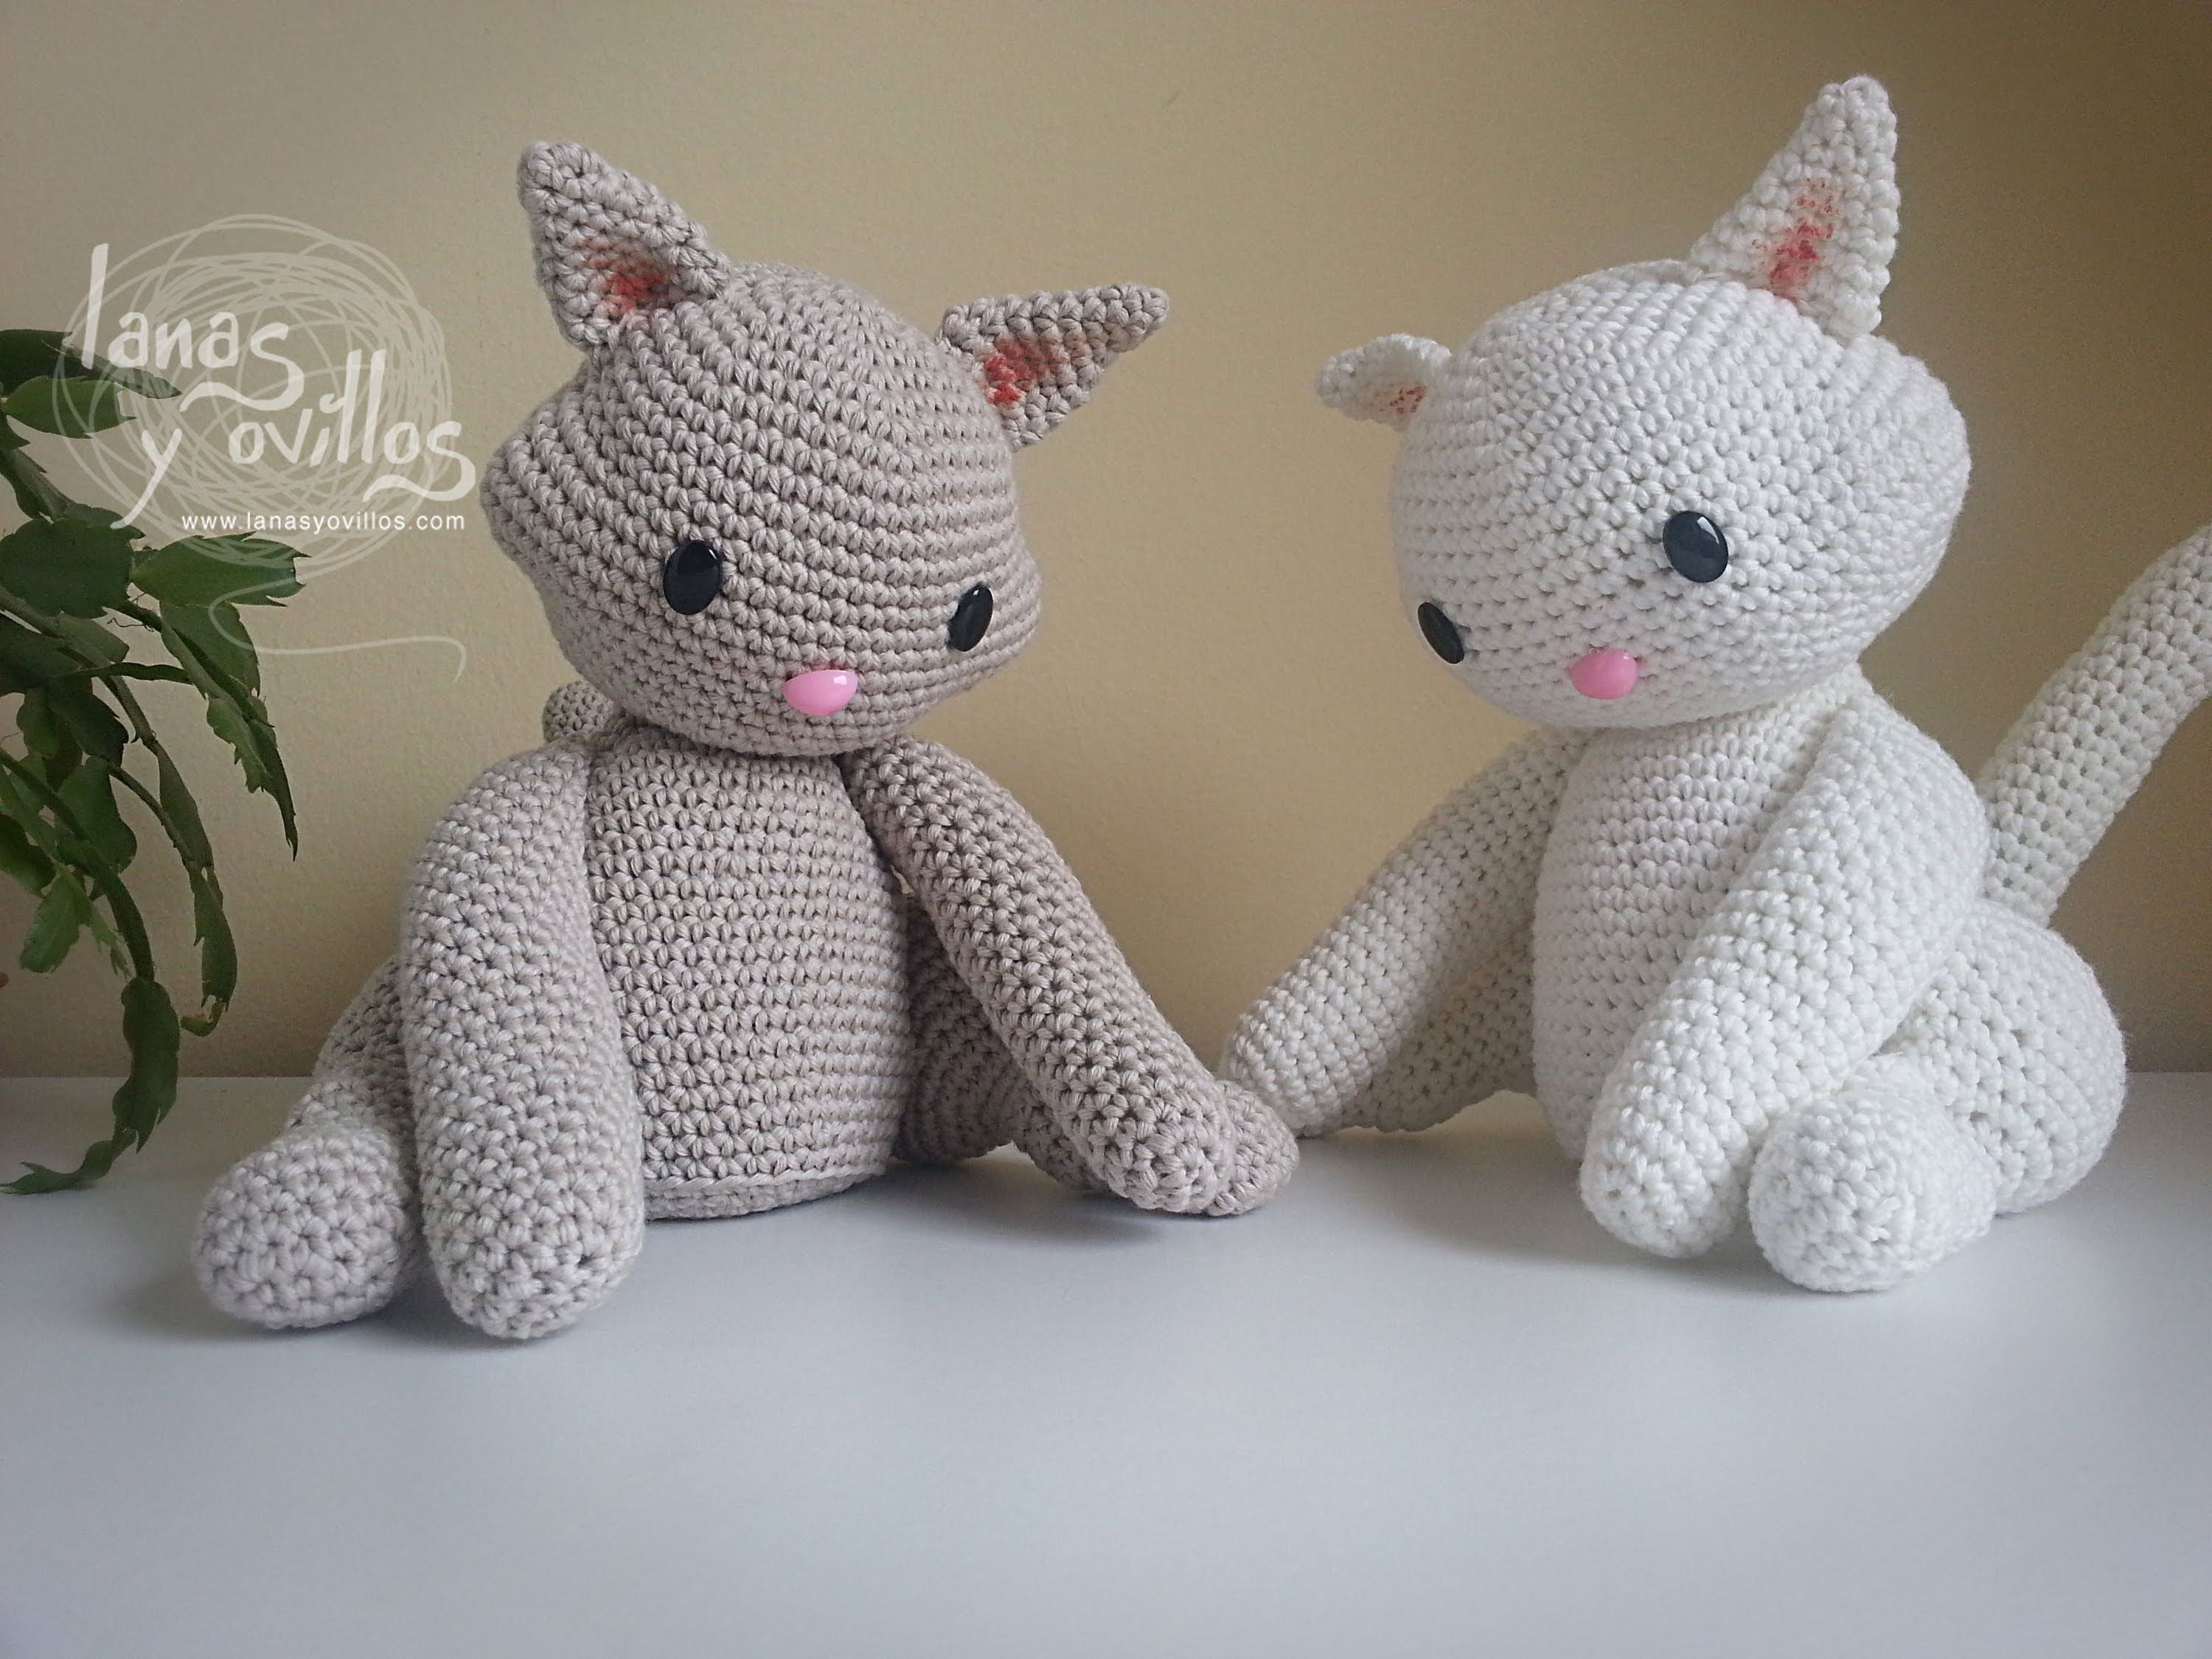 Tutorial gato amigurumi cat 1 2 english subtitles amigurumi patron gato amigurumi gratis crochet cat free patterplus loads more in spanish bankloansurffo Image collections